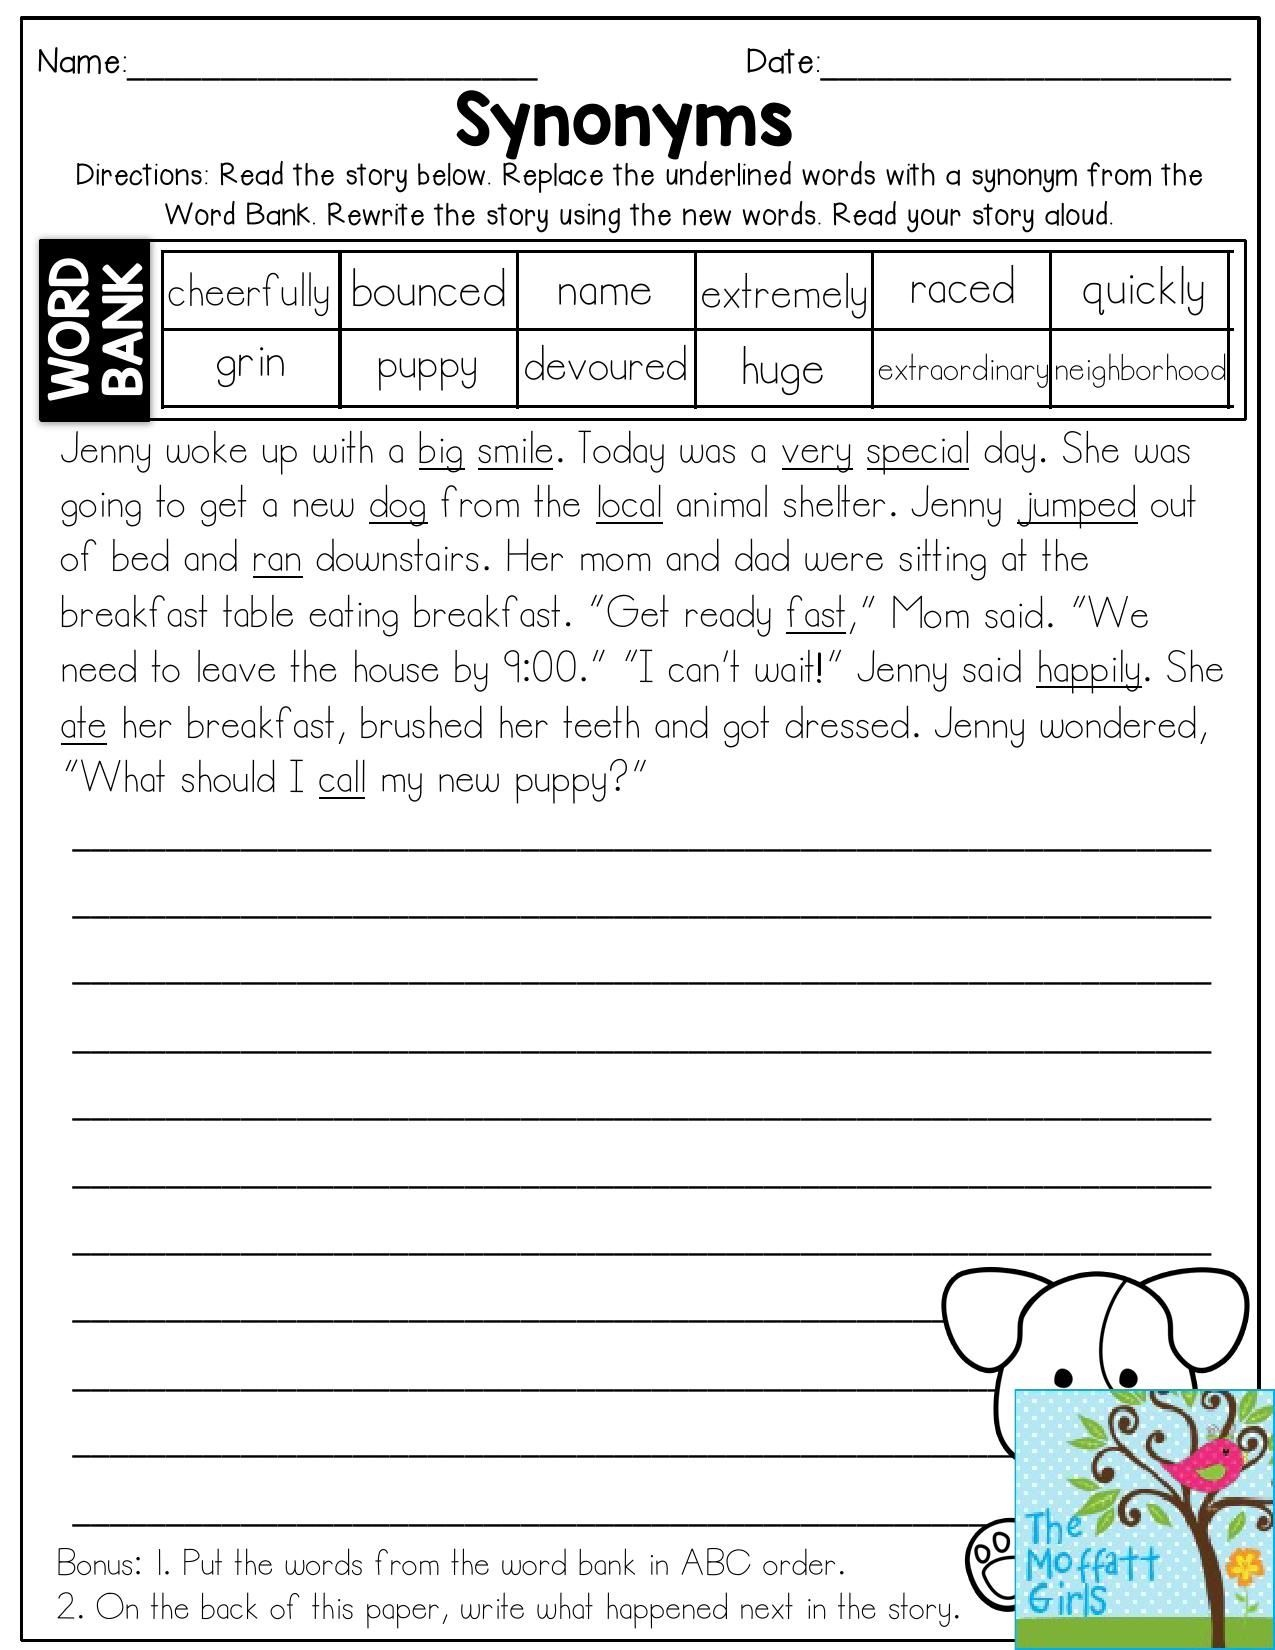 Synonyms- Read The Story And Replace The Underlined Words With - Free Printable High Interest Low Reading Level Stories